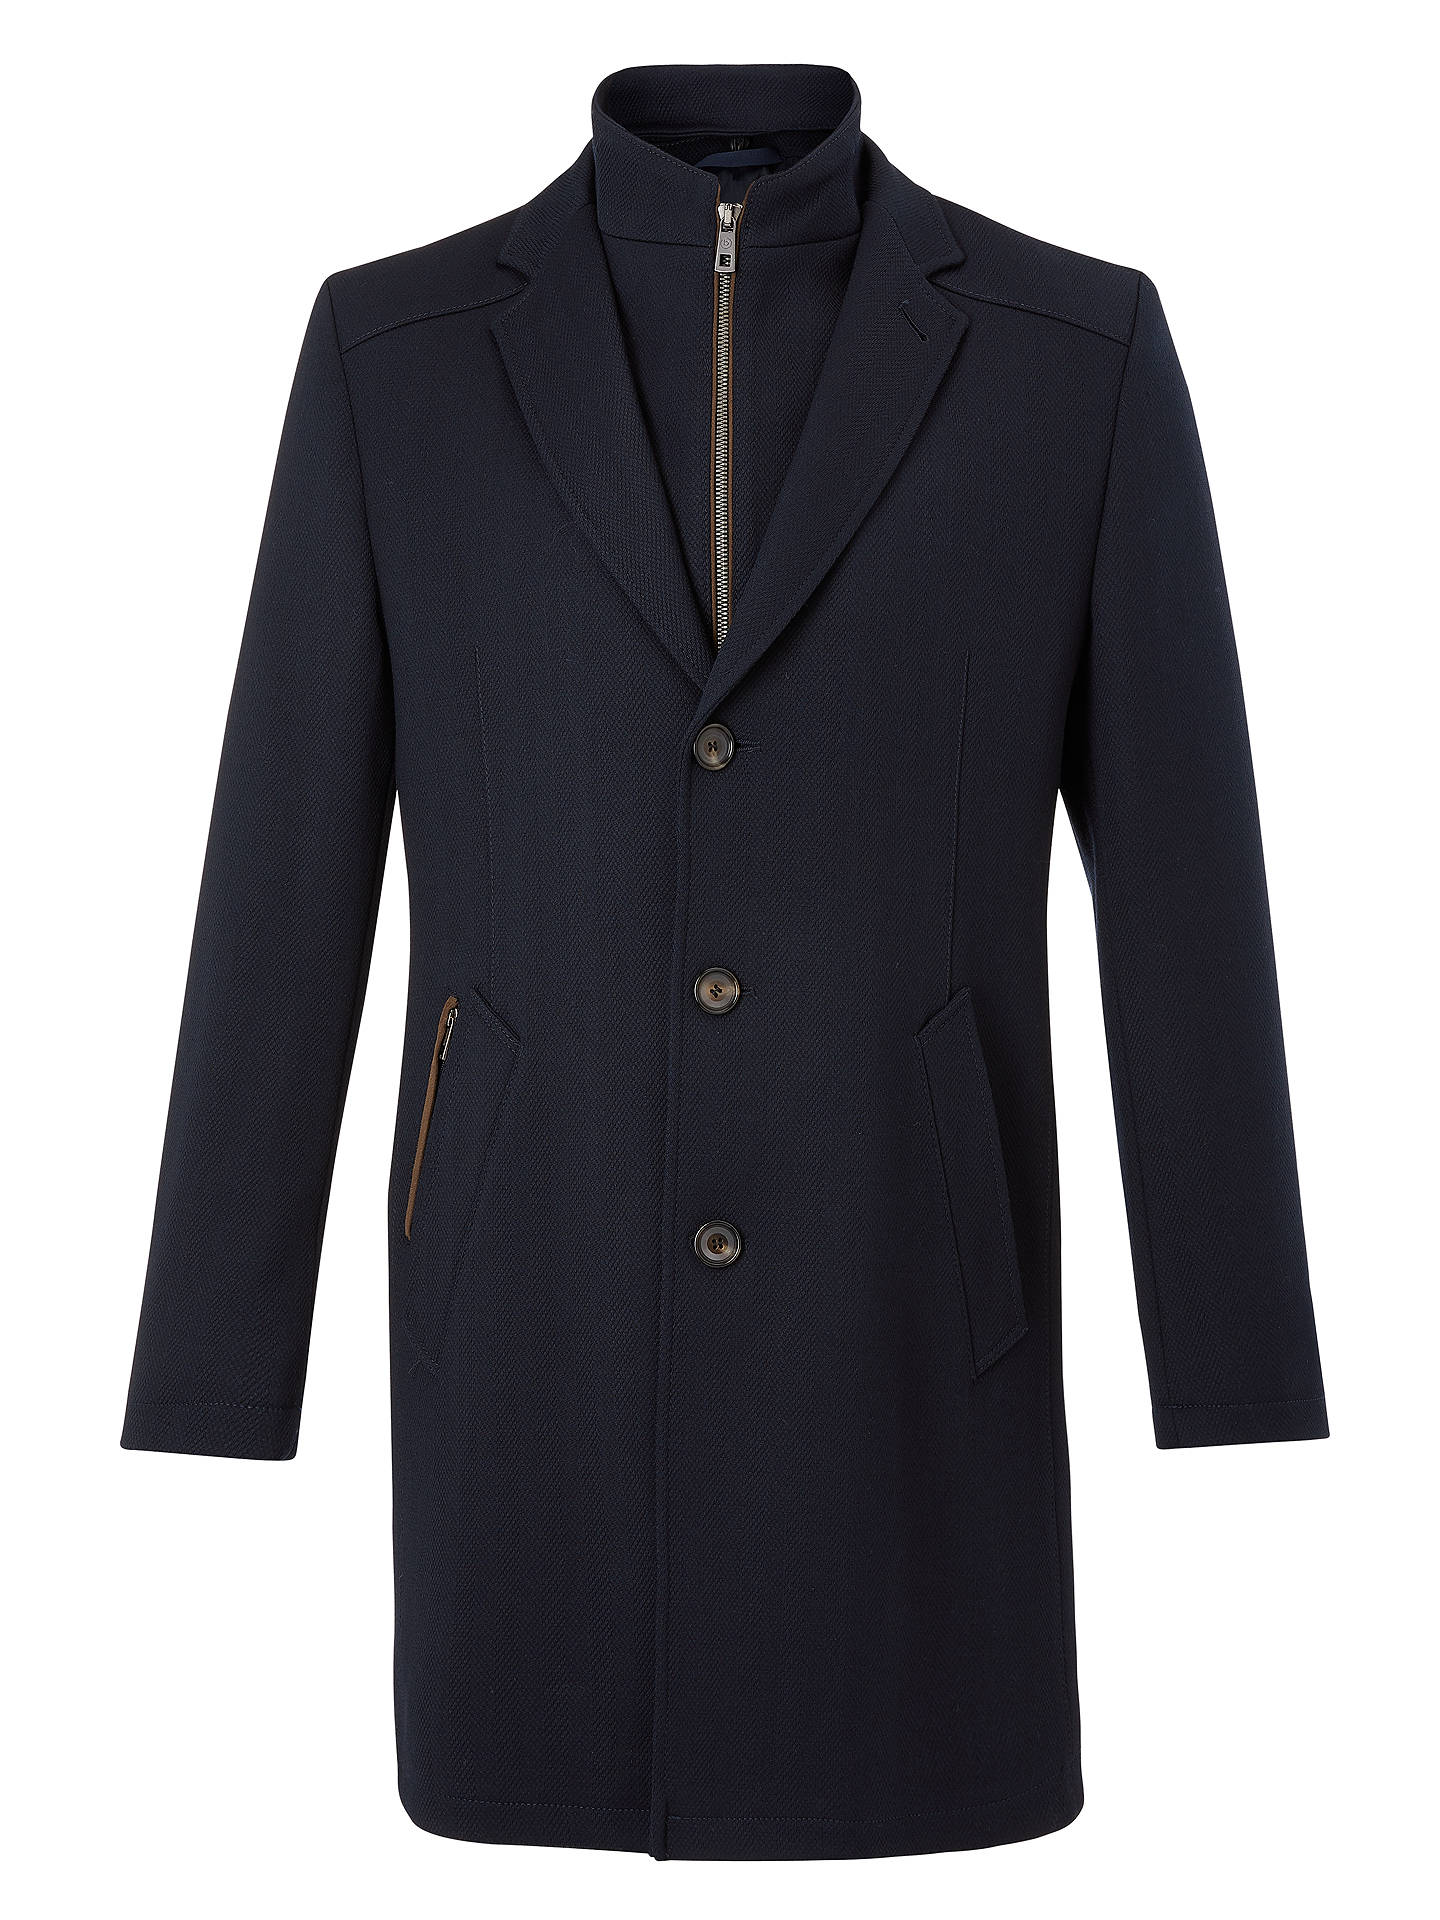 BuyBugatti Flex City Wool Blend Coat, Blue, 44R Online at johnlewis.com